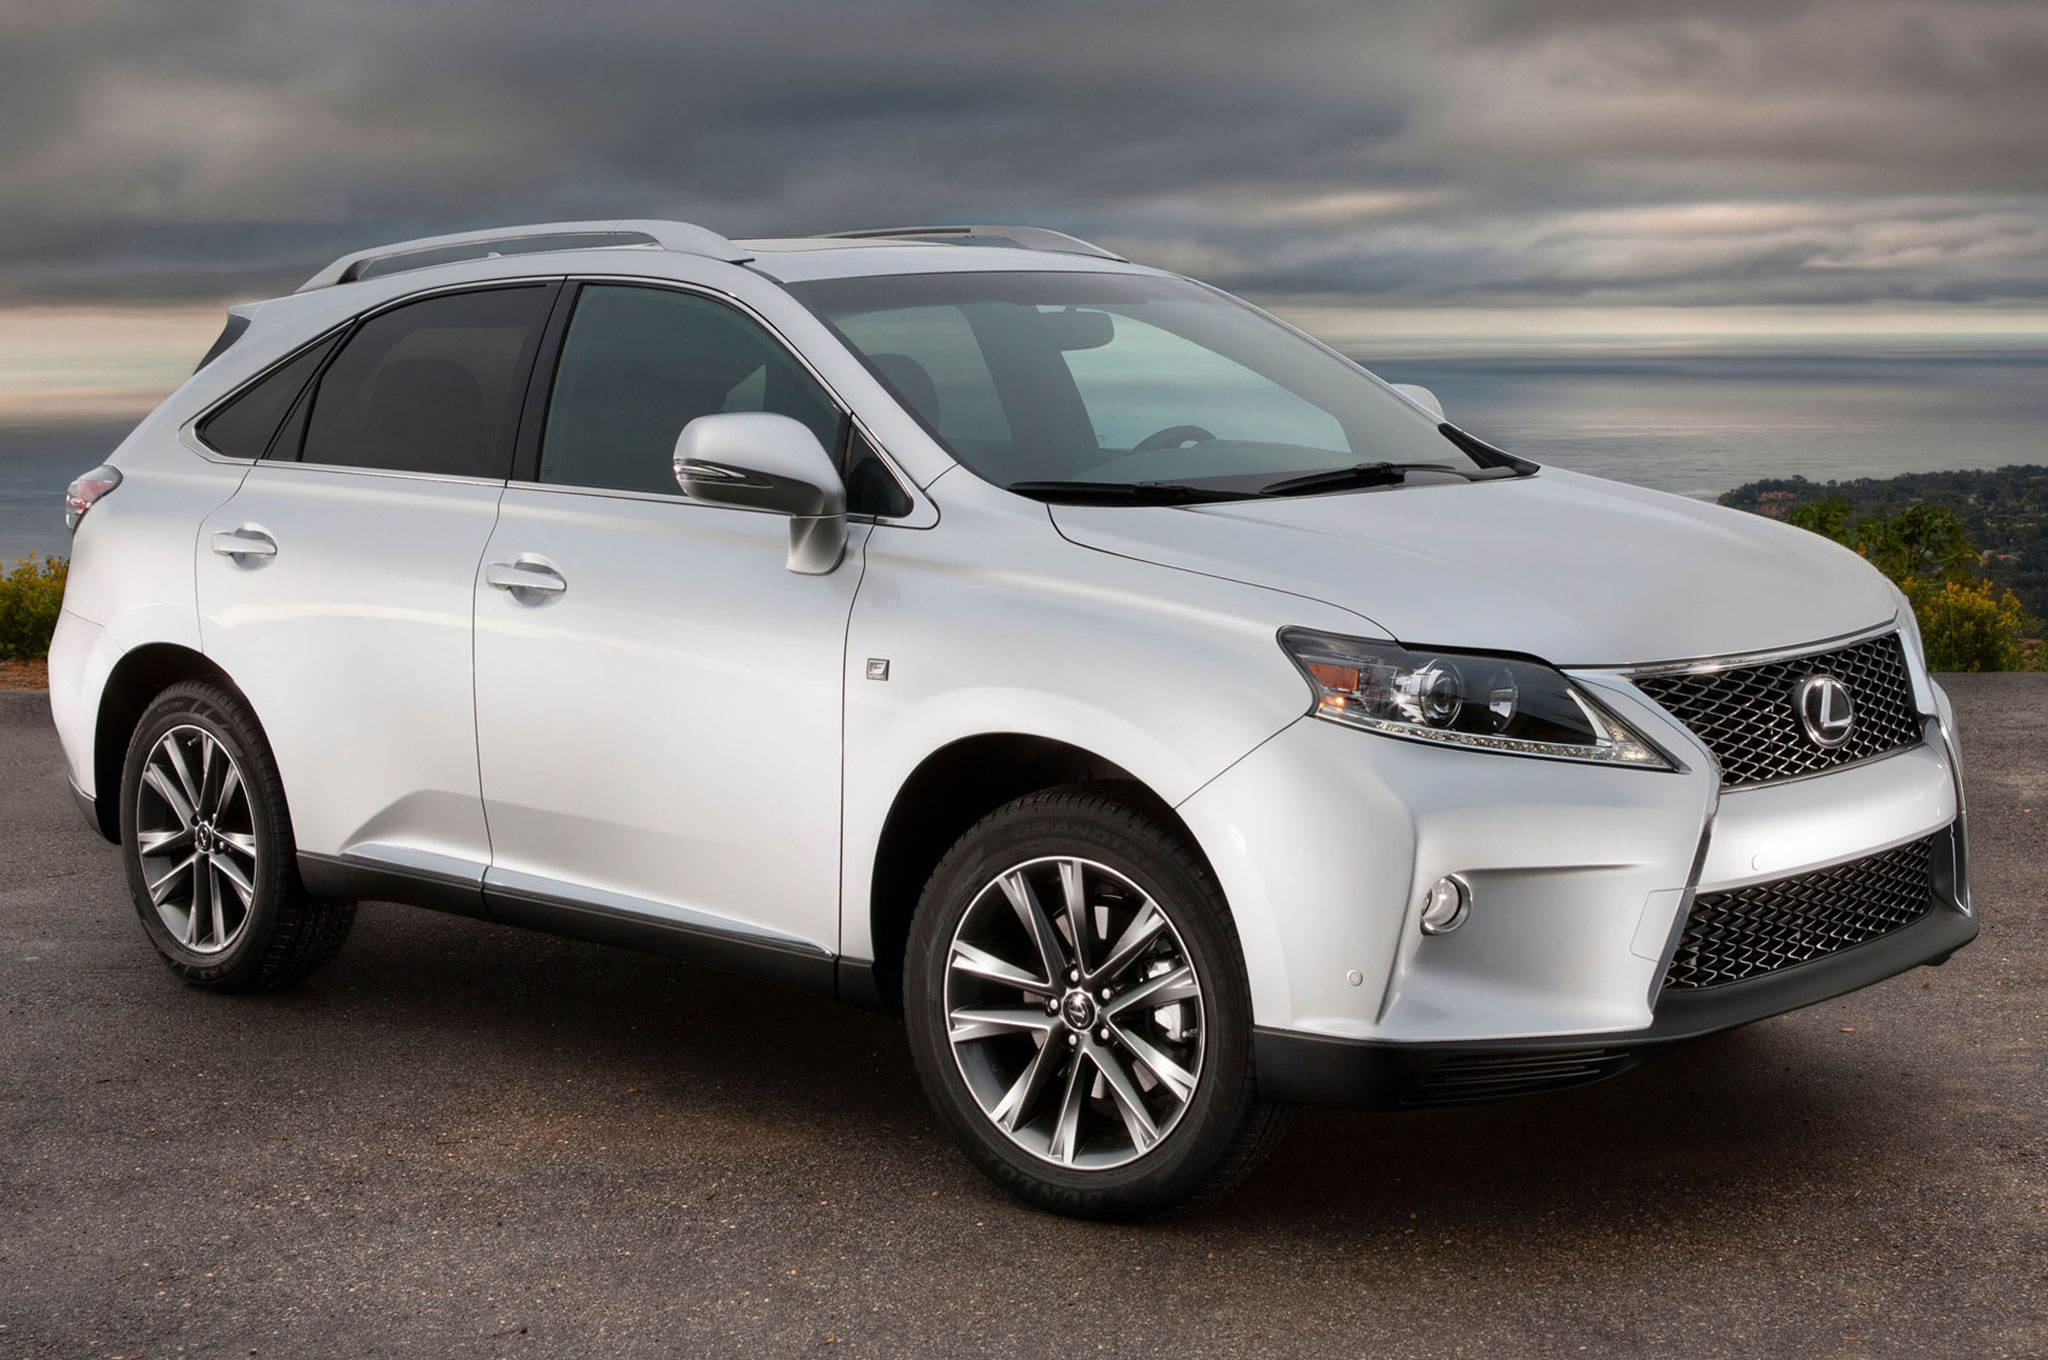 Updated 2014 Lexus RX350 Priced At $40,670, RX450h At $47,320